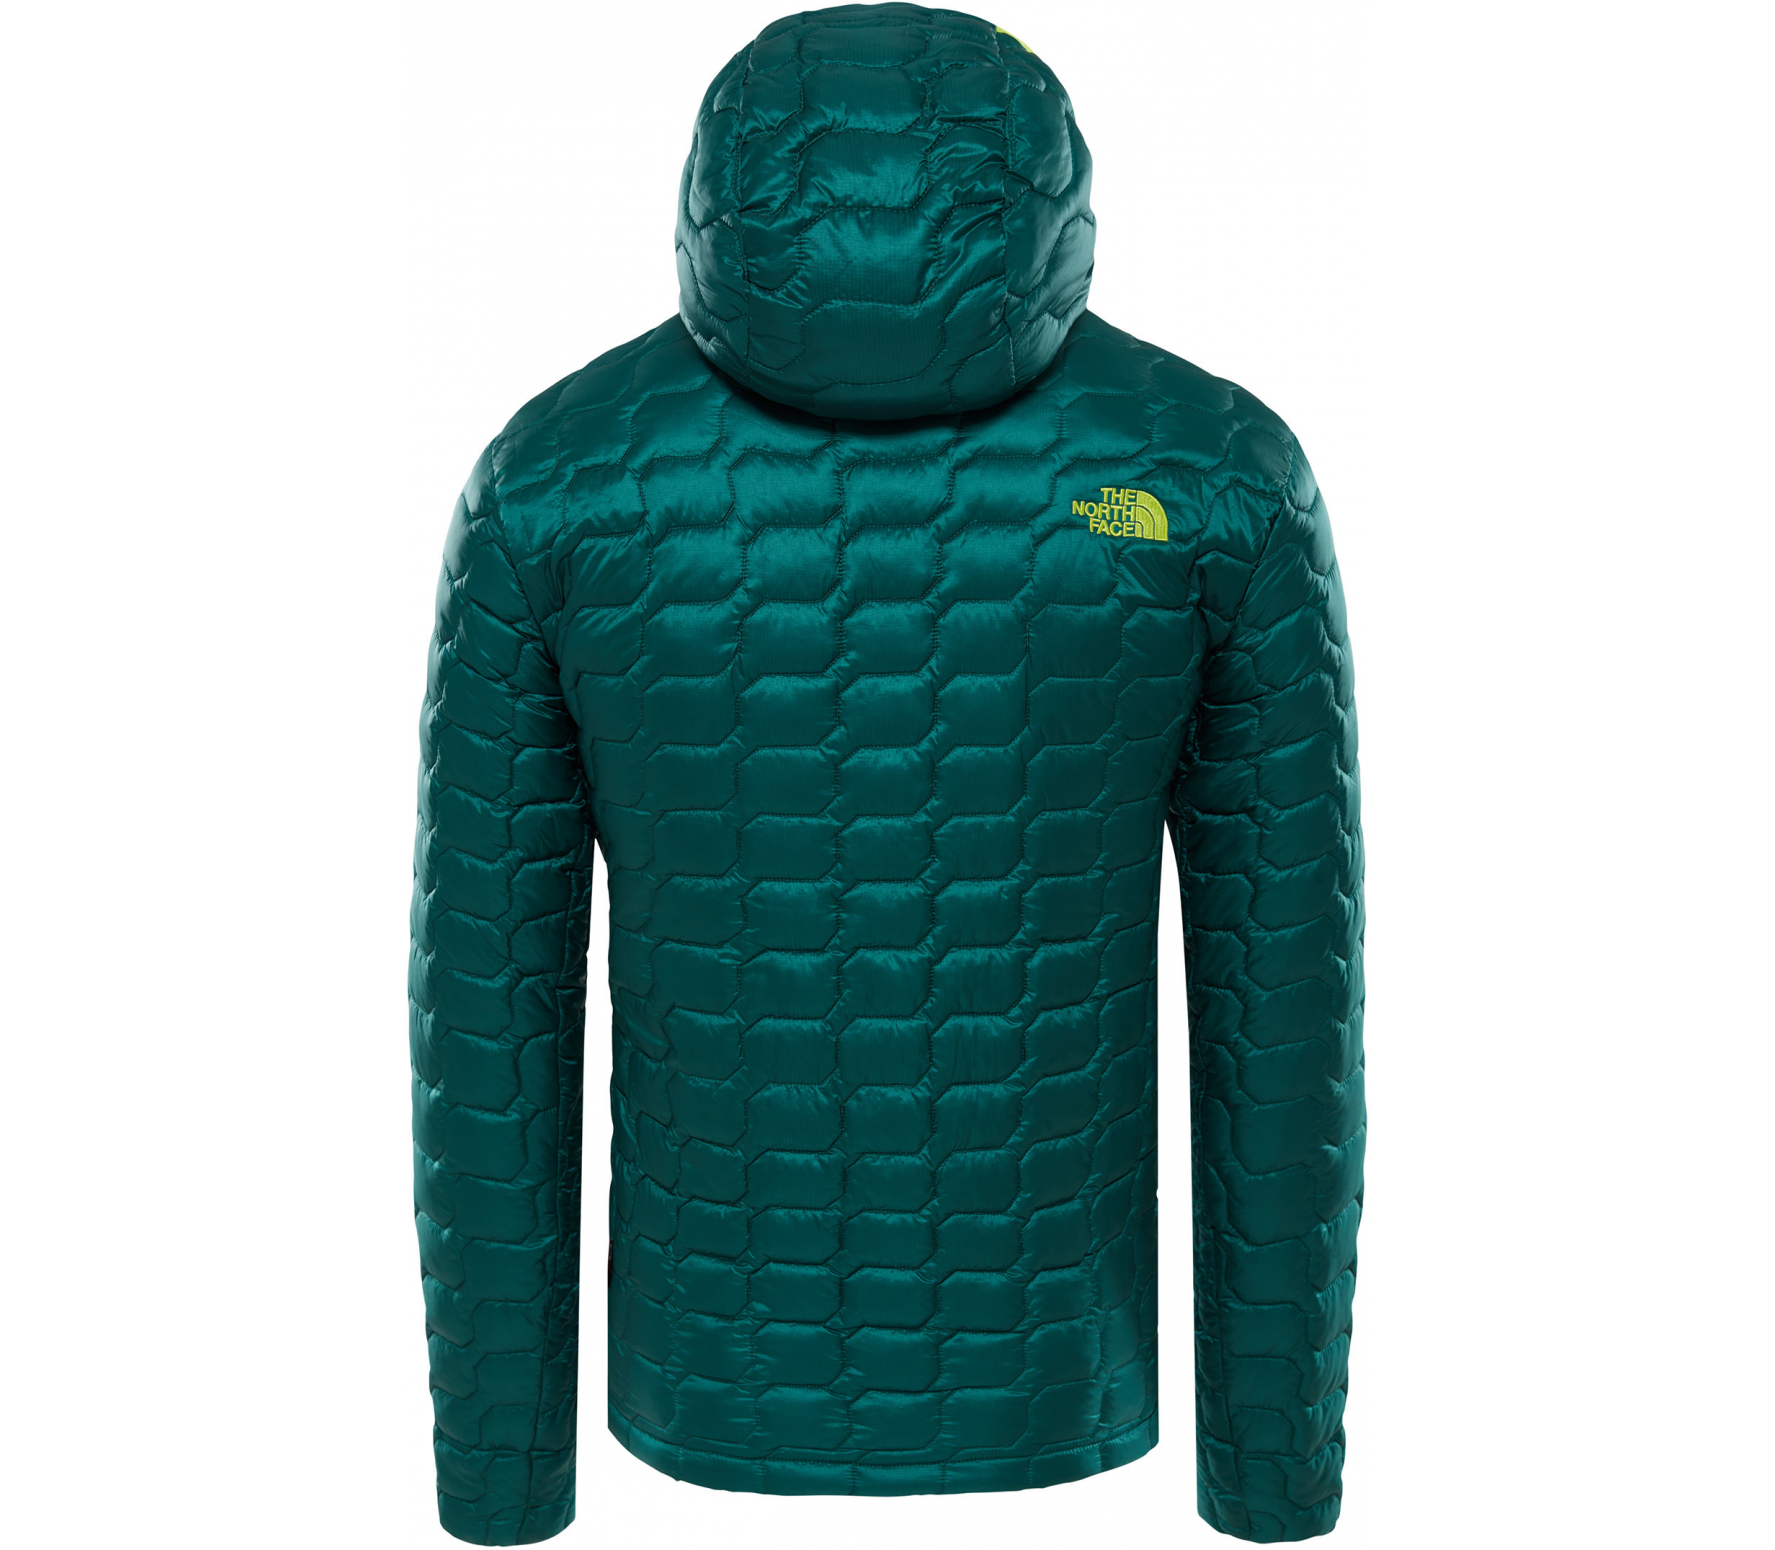 bbe13633a9 The North Face - ThermoBall Pro veste isolante pour hommes (vert ...